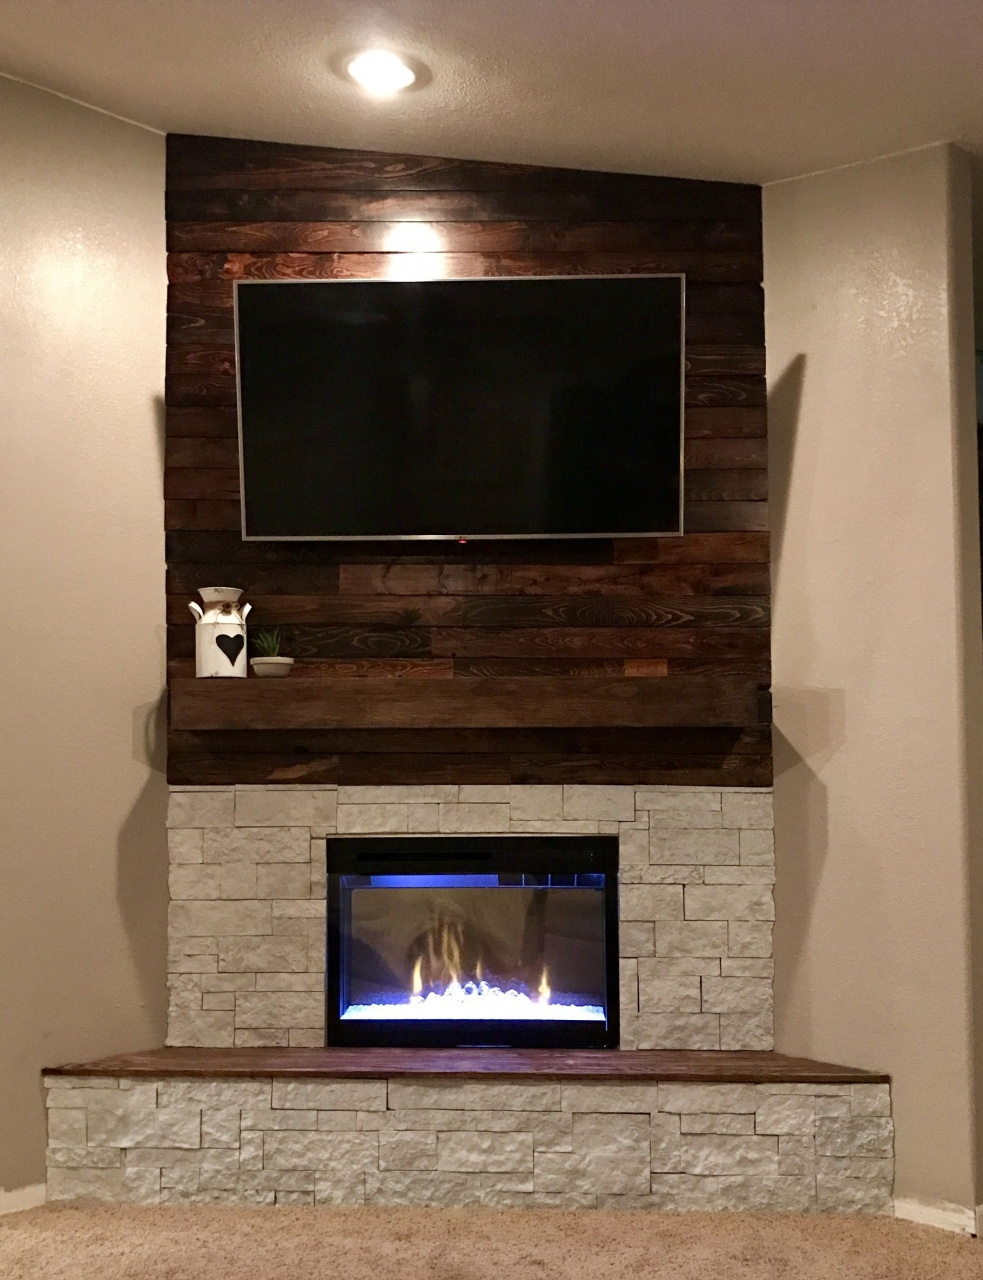 built in electric fireplace and tv design 38 inspiration for fireplace corner ideas from built in electric fireplace and tv design